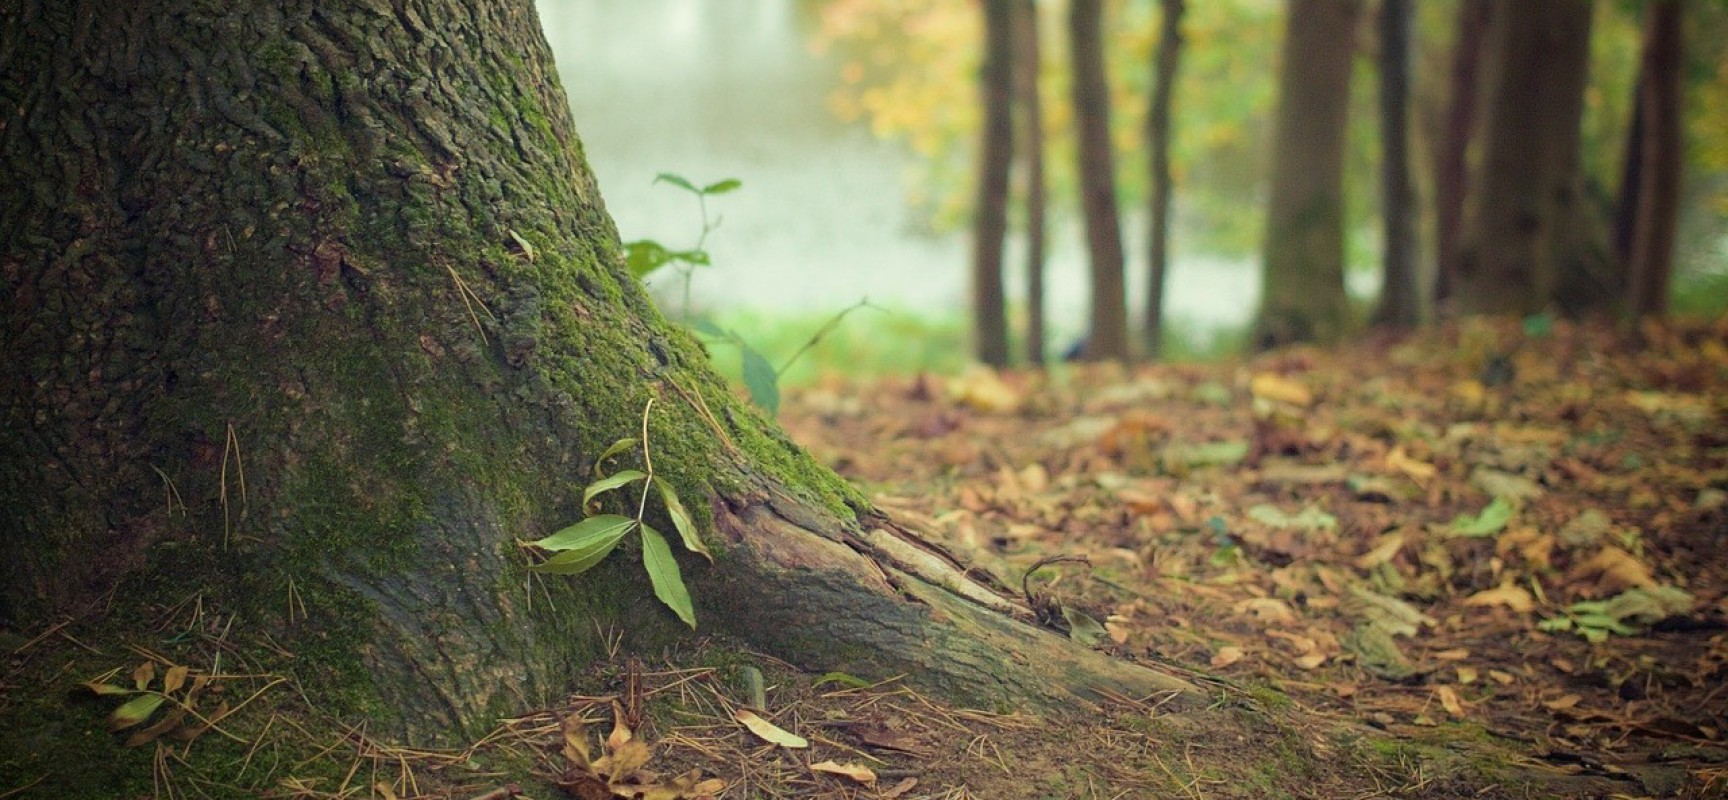 Should Christians Care about Earth Day?